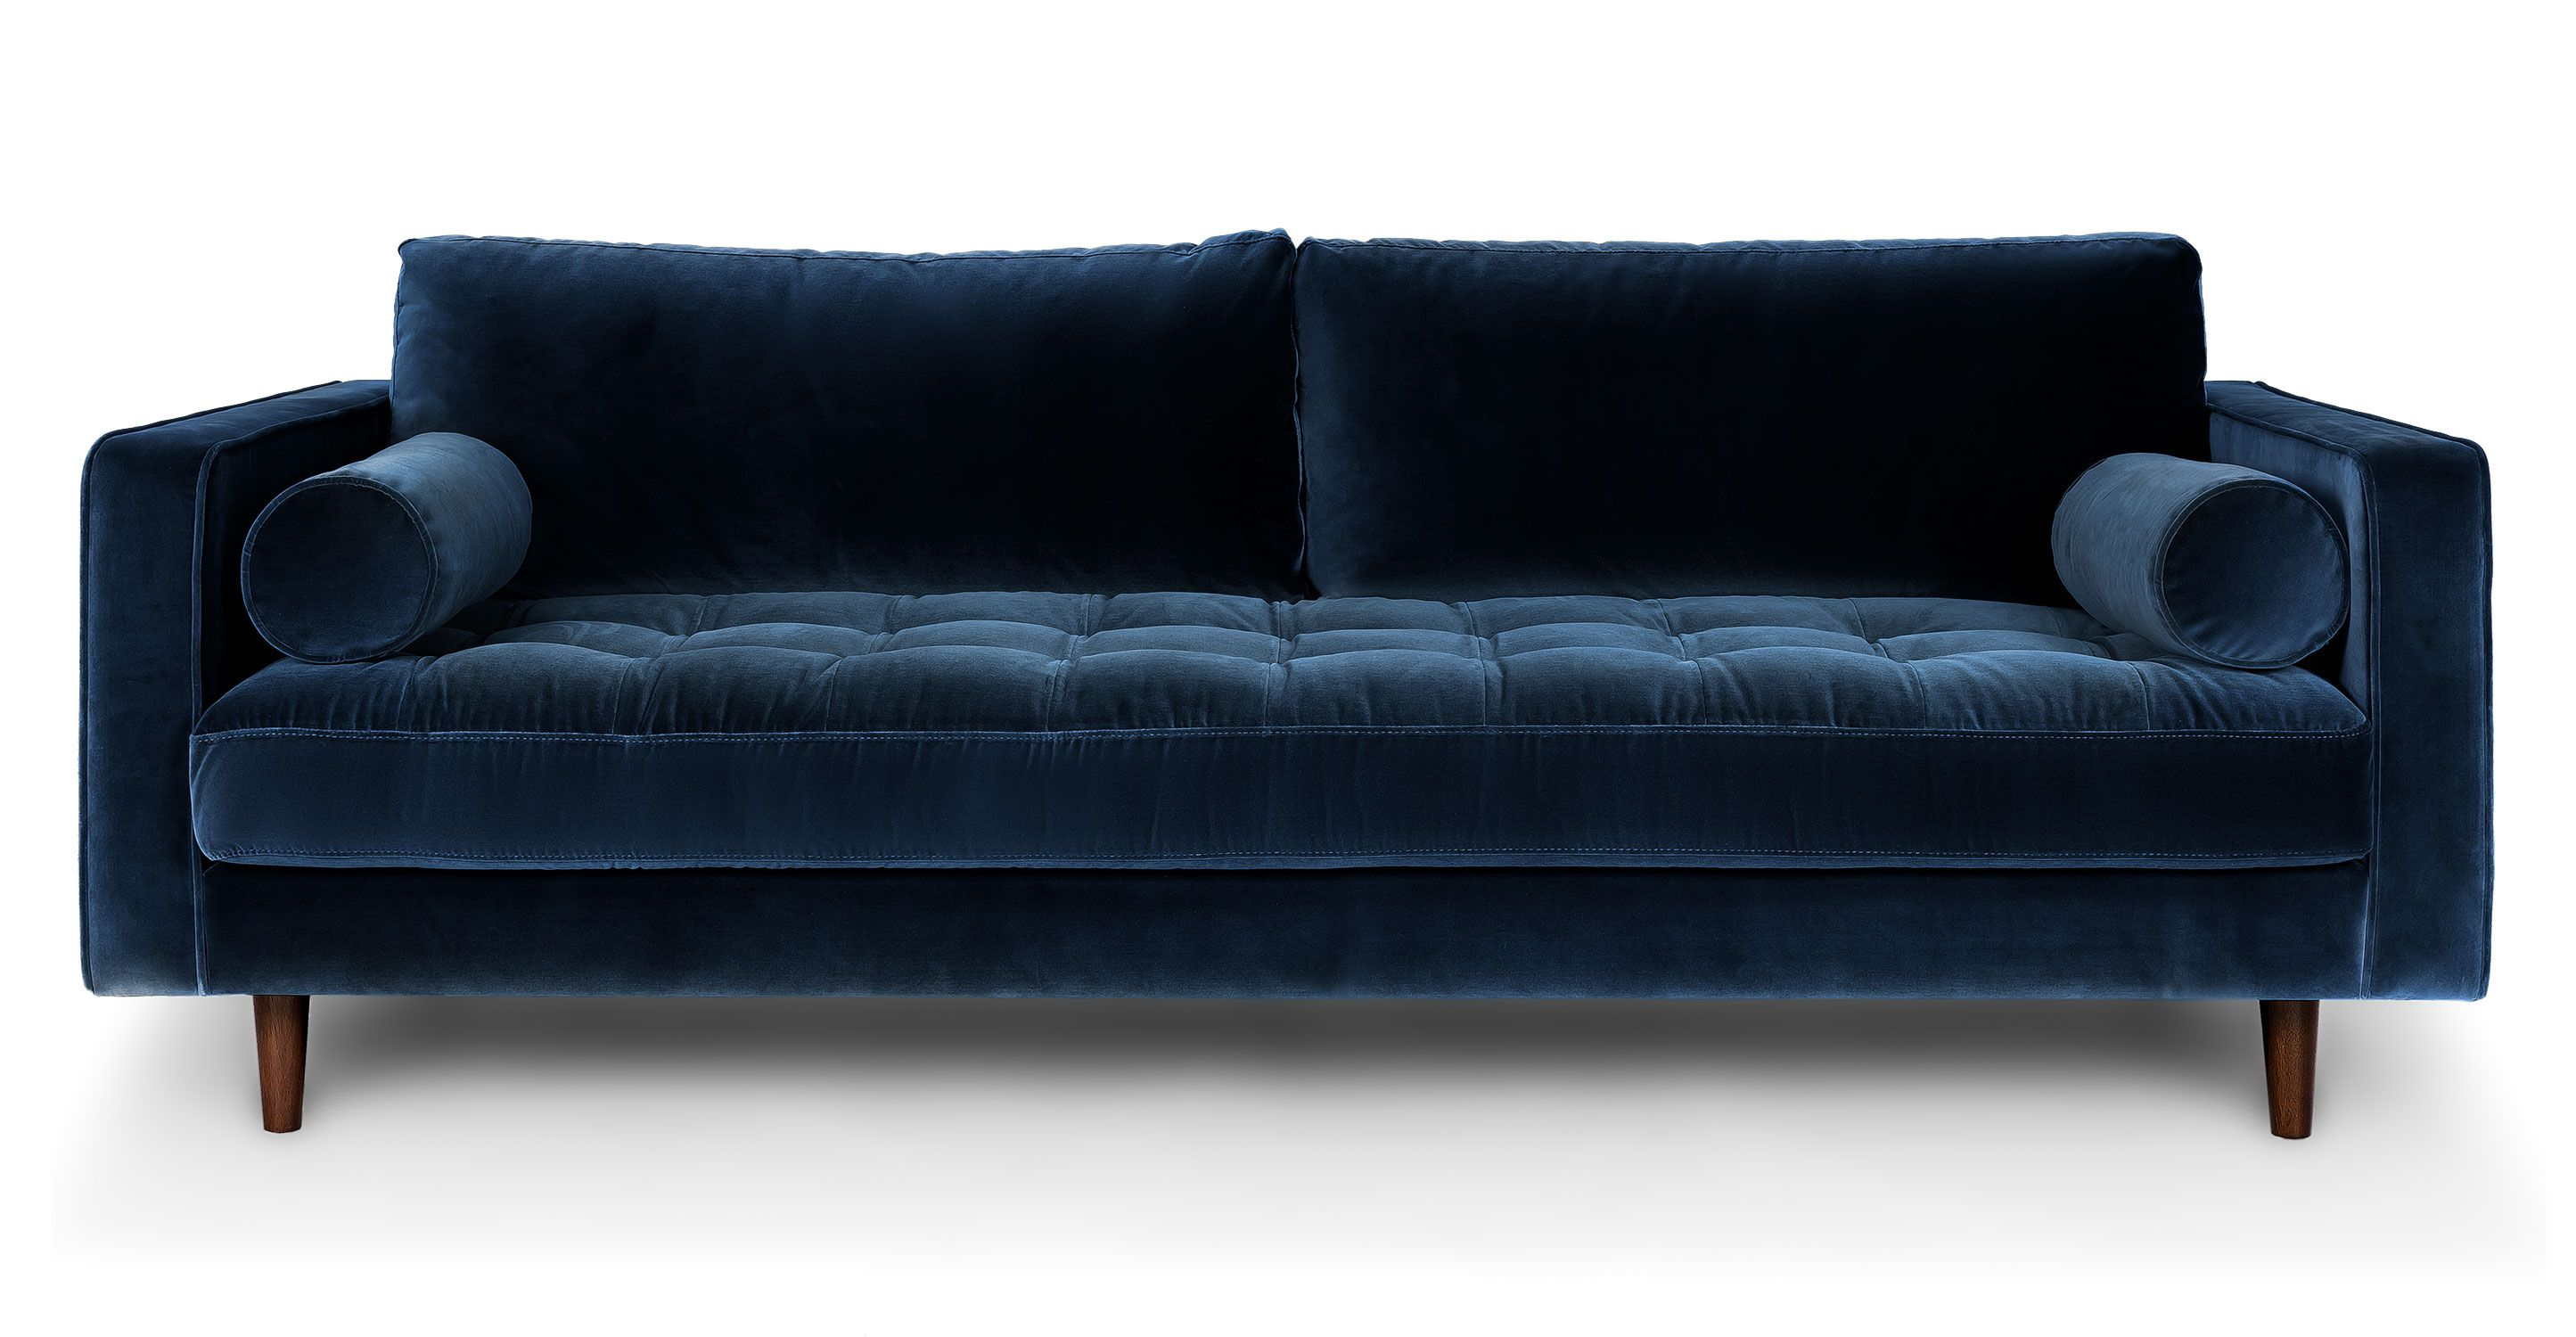 Blue Velvet Tufted Sofa Upholstered Article Sven Modern Furniture Scandinavian Furniture